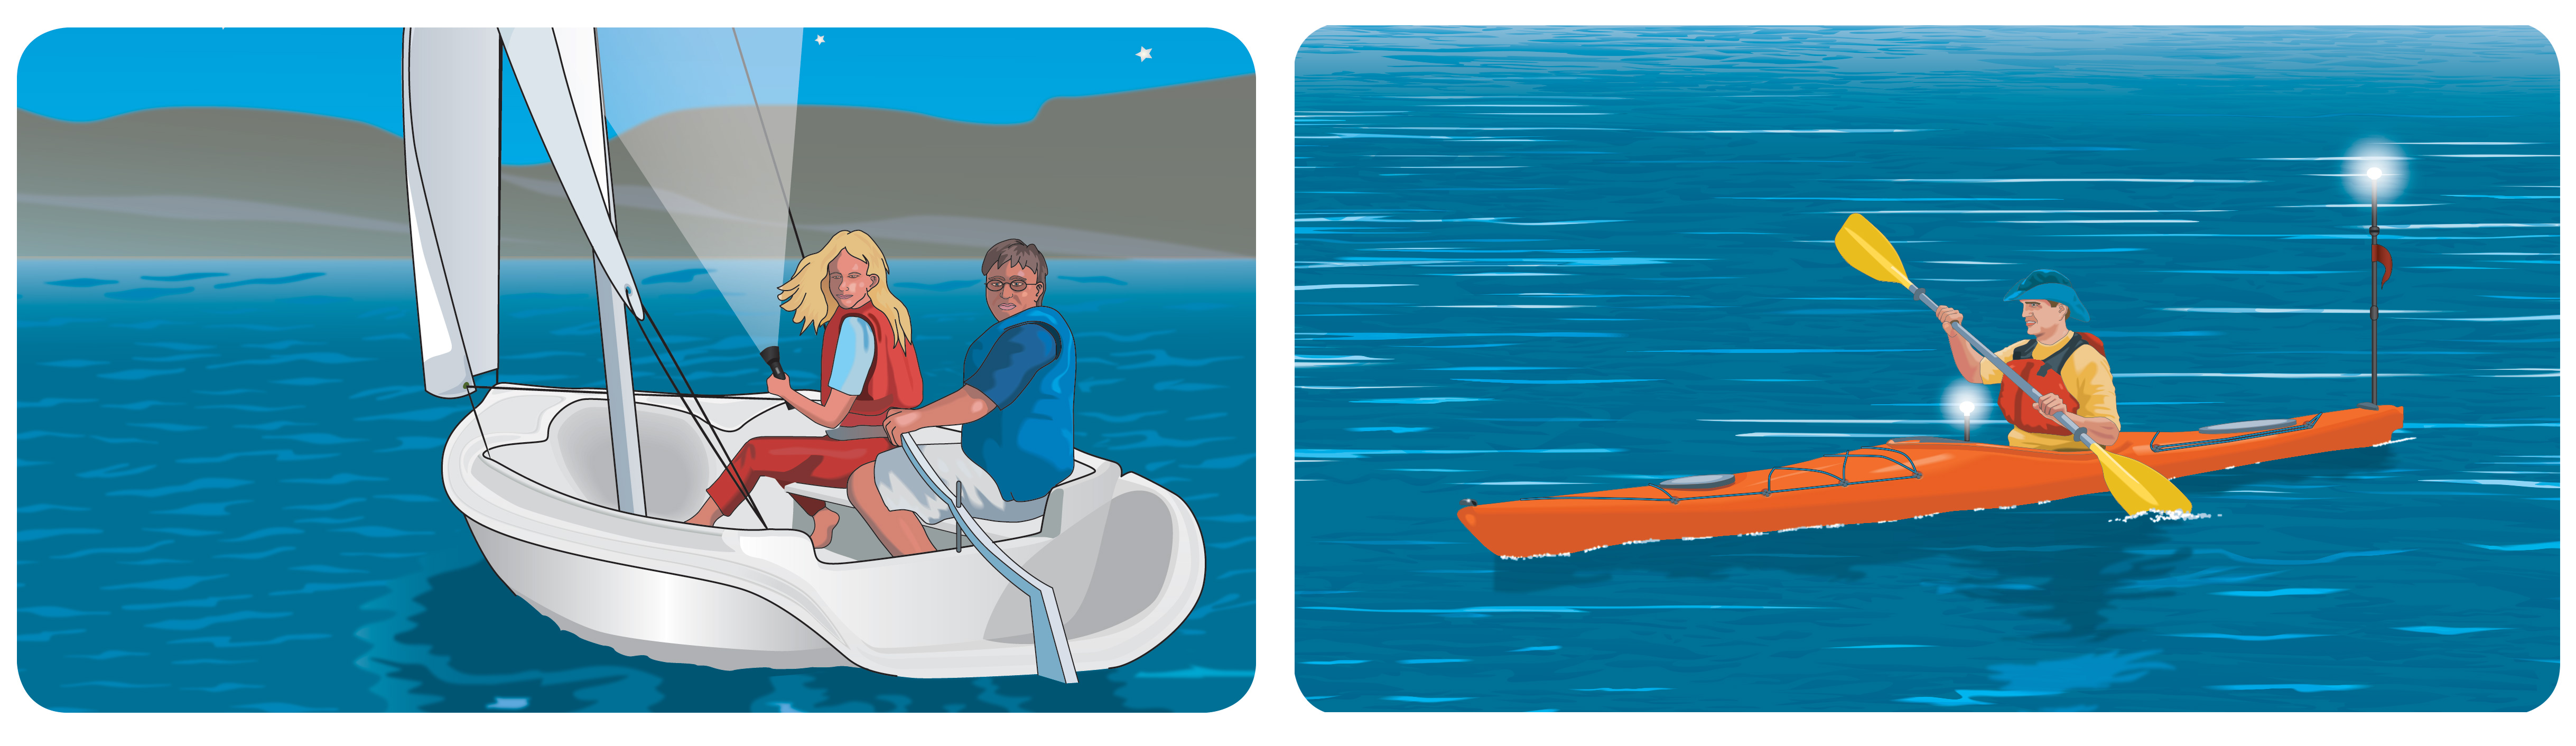 Figure 3: Navigation lights on unpowered vessels (left: couple on sailboat; right: person in kayak)